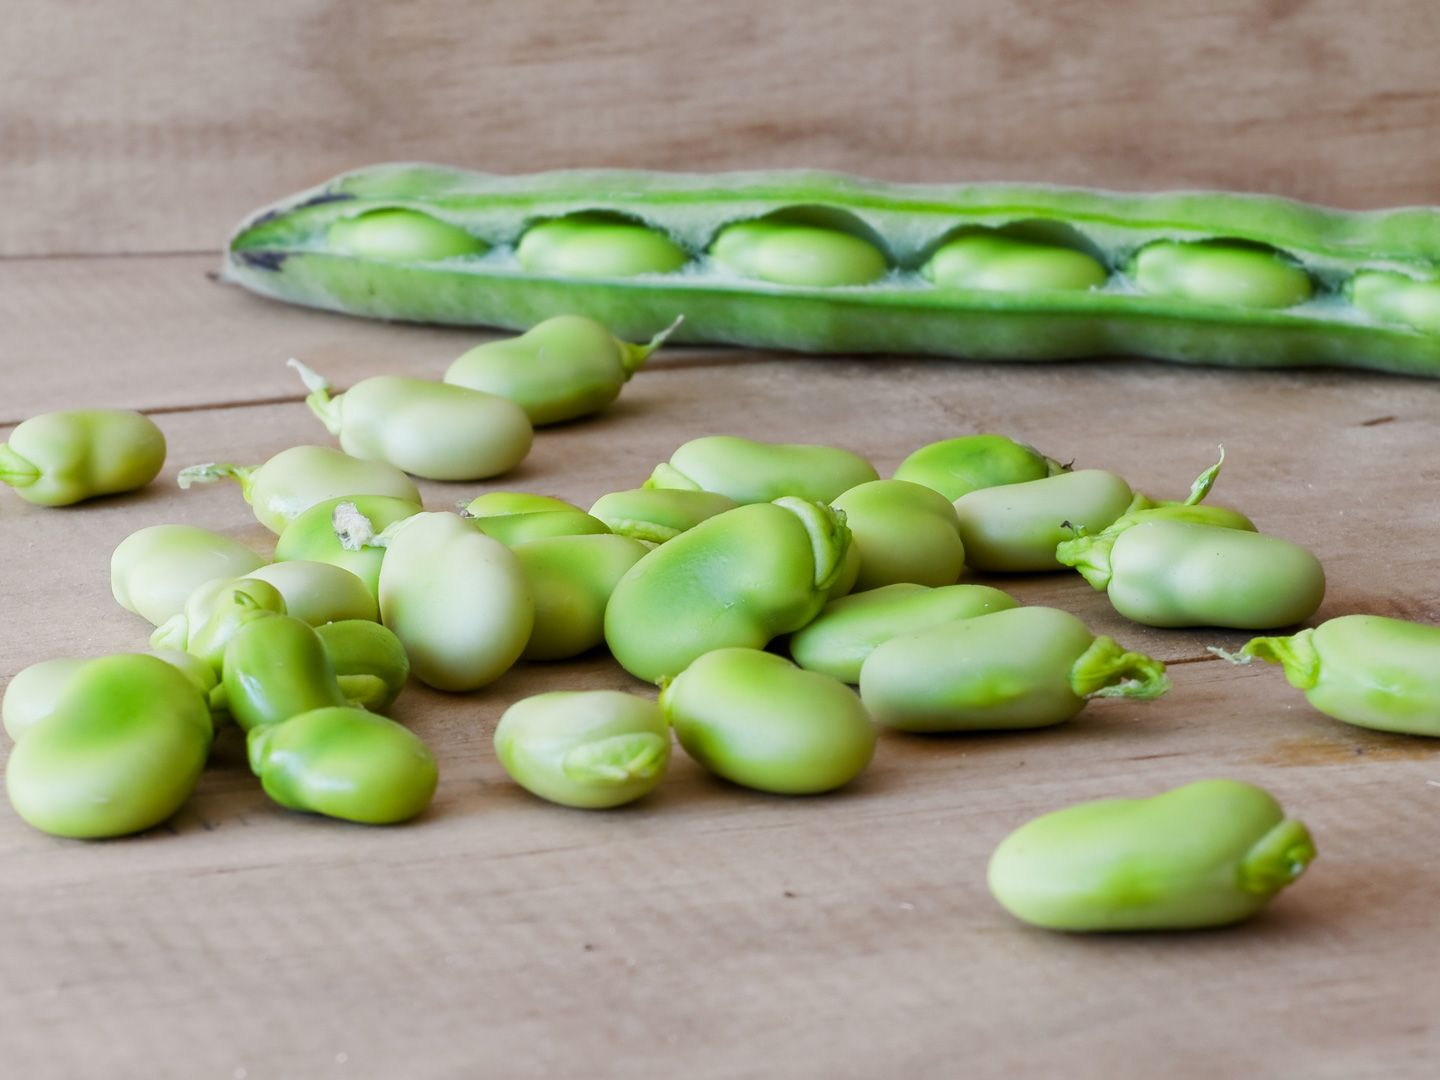 Lima Beans Also Called Butter Beans Are A Versatile And Tasty Legume You Can Find Them Dried Frozen Or Canned Year Butter Beans Beans Nutrition Lima Beans